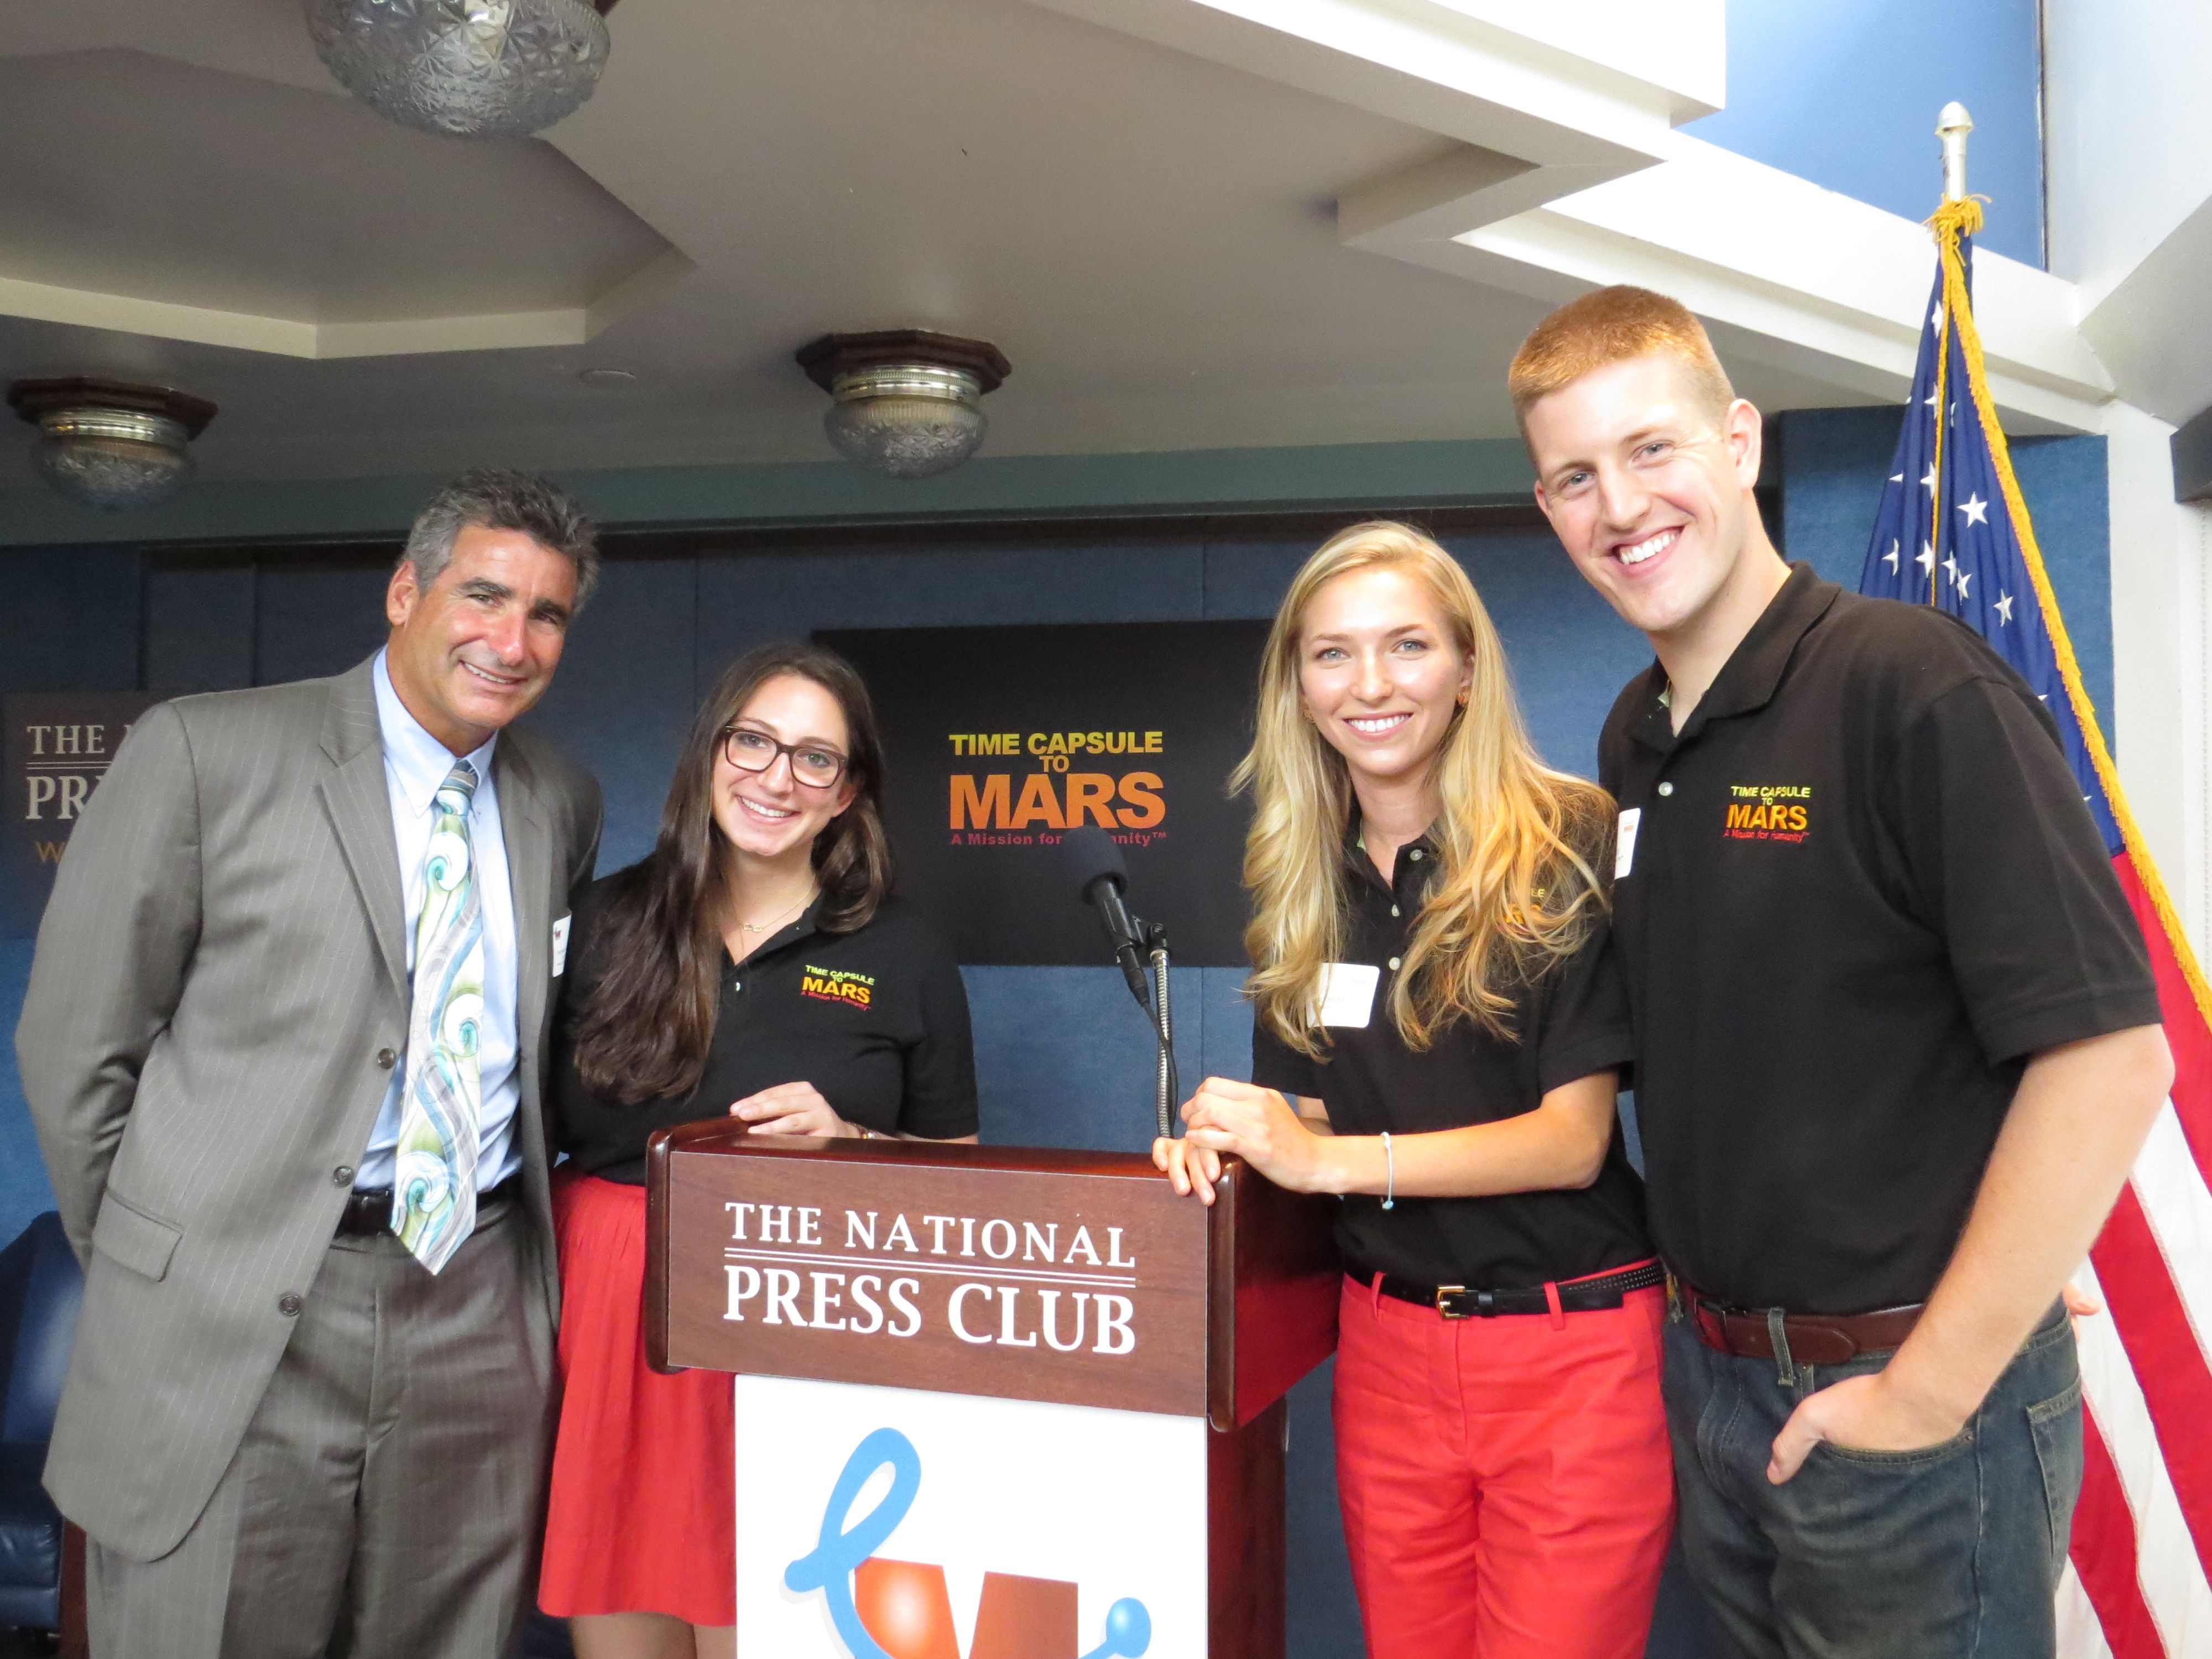 Pratt Dean Tom Katsouleas (left) at the Time Capsule to Mars press conference with Duke students (from left to right) Lauren Silverstein, social media manager and co-president of the Duke technical team; Emily Briere, mission director; and Jon Tidd, business director.